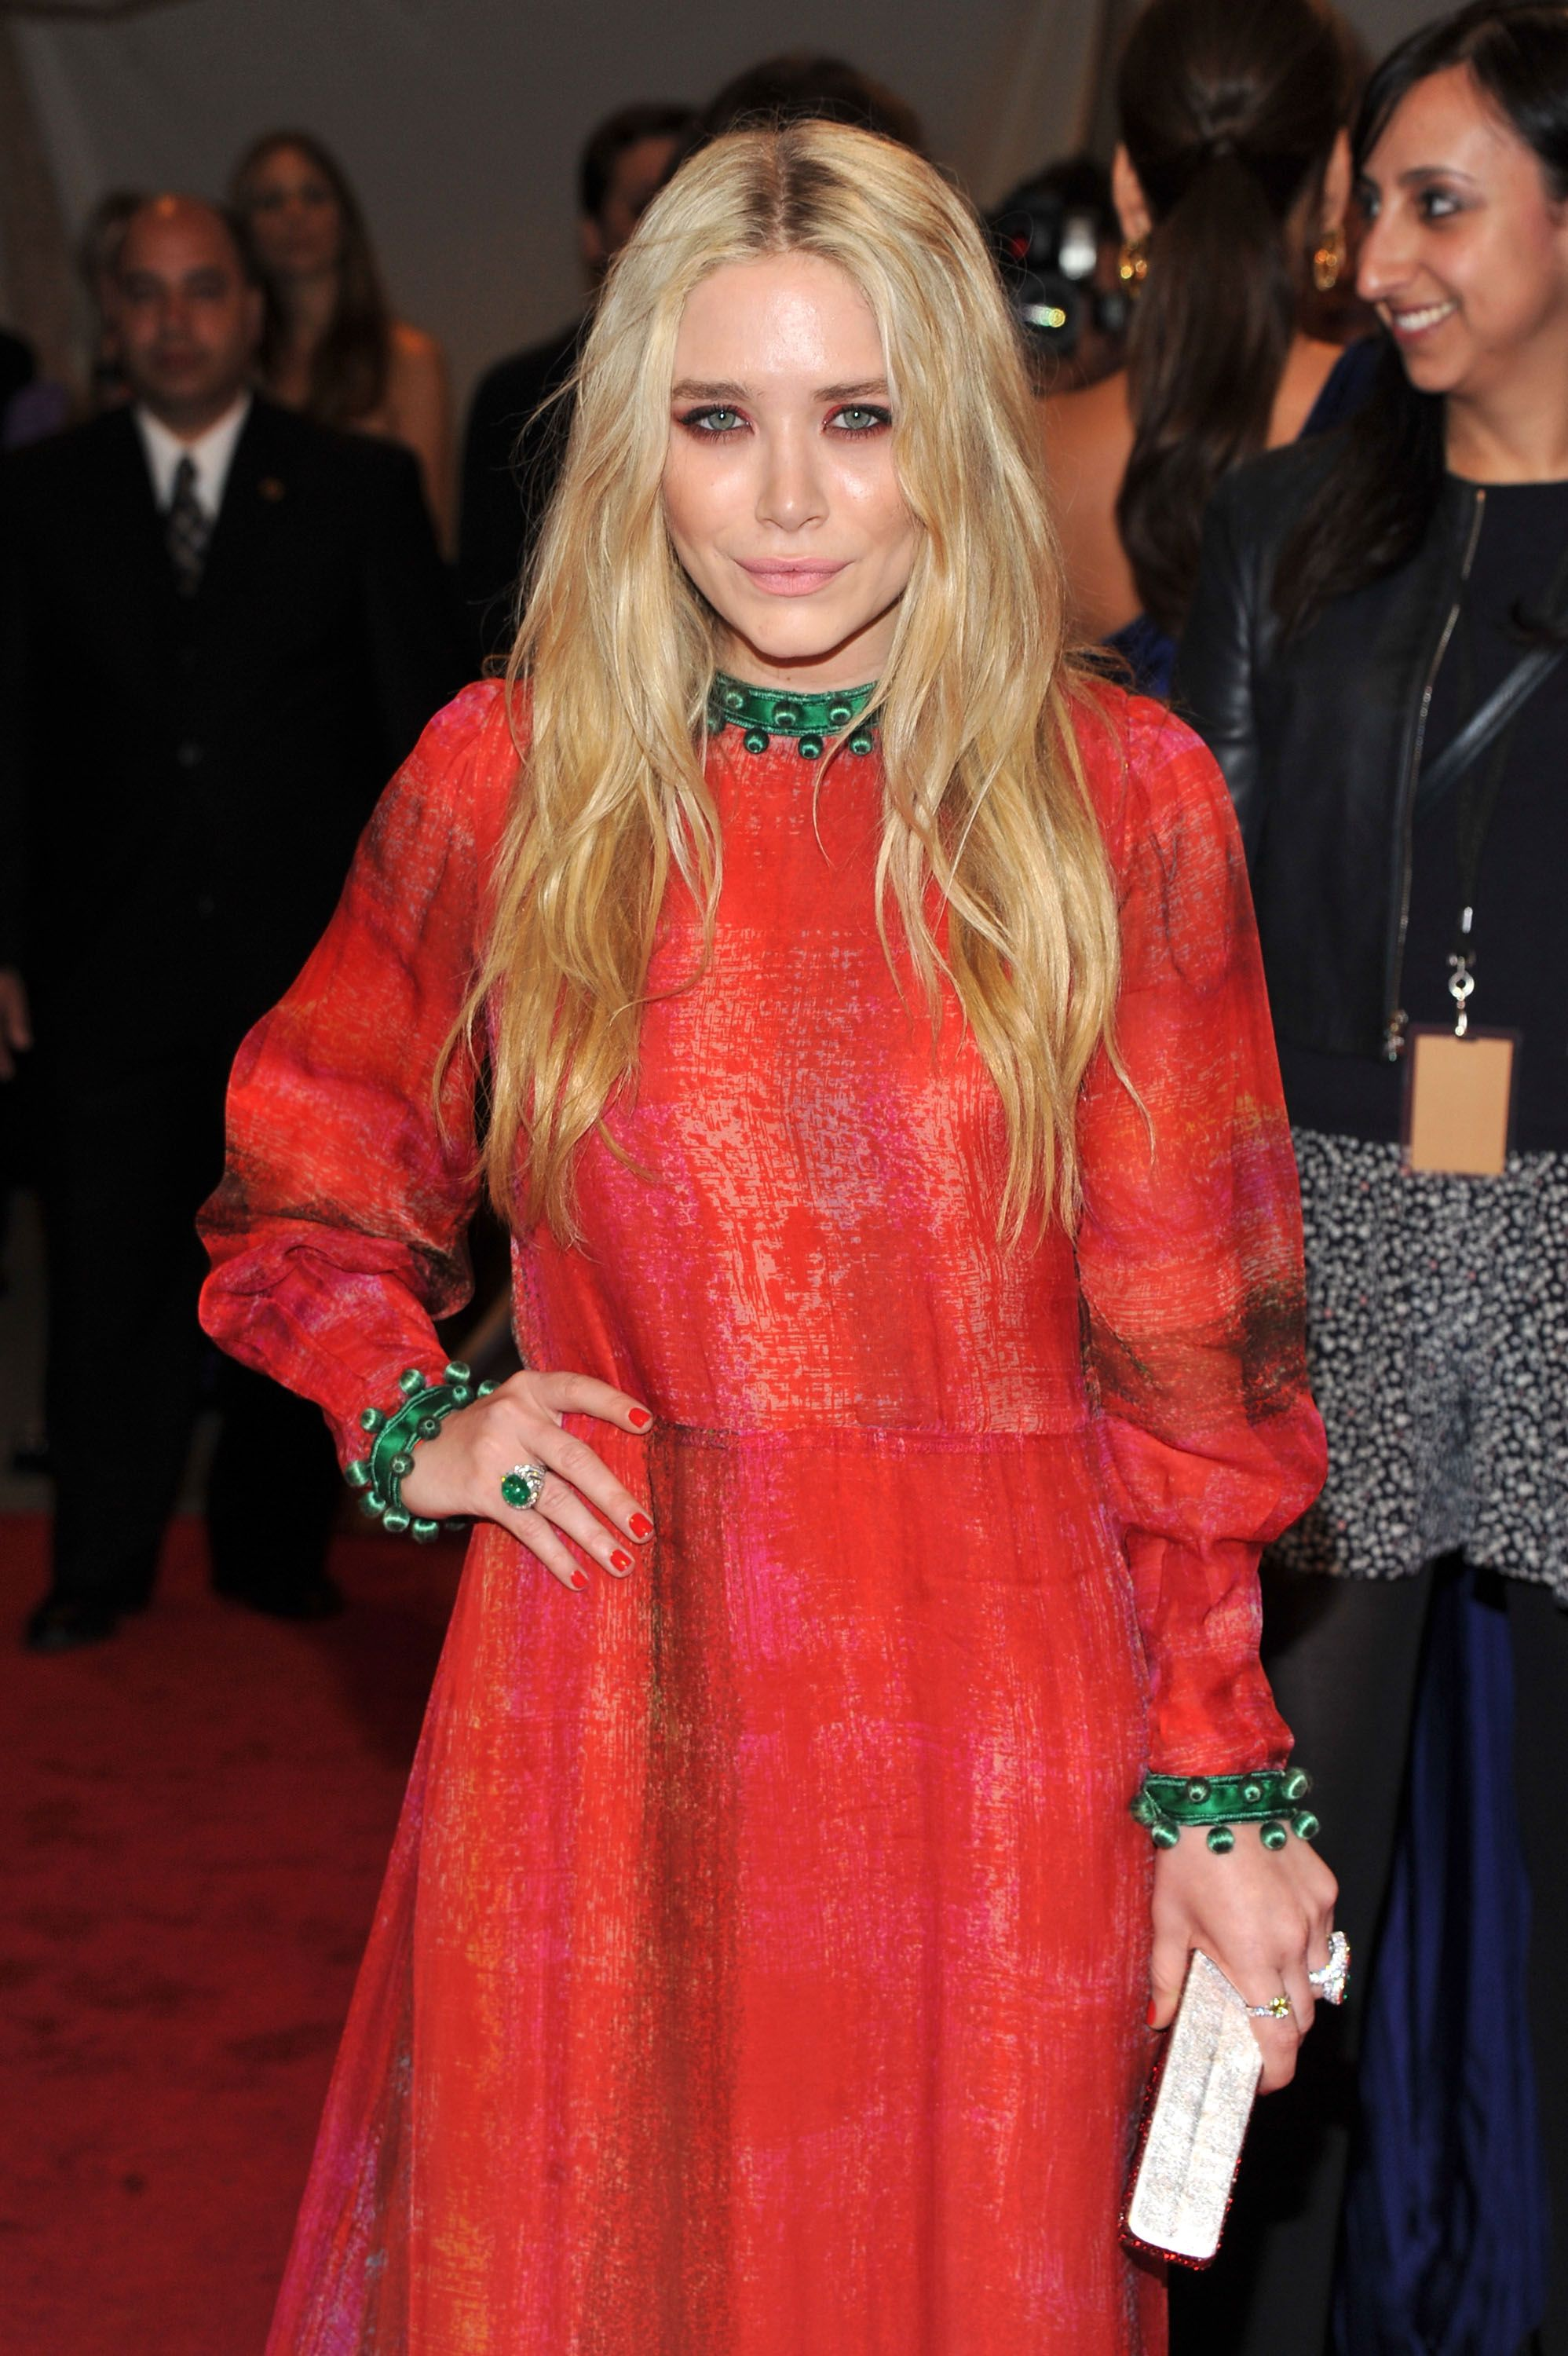 """Mary-Kate Olsen during the """"Alexander McQueen: Savage Beauty"""" Costume Institute Gala at The Metropolitan Museum of Art on May 2, 2011 in New York City. 